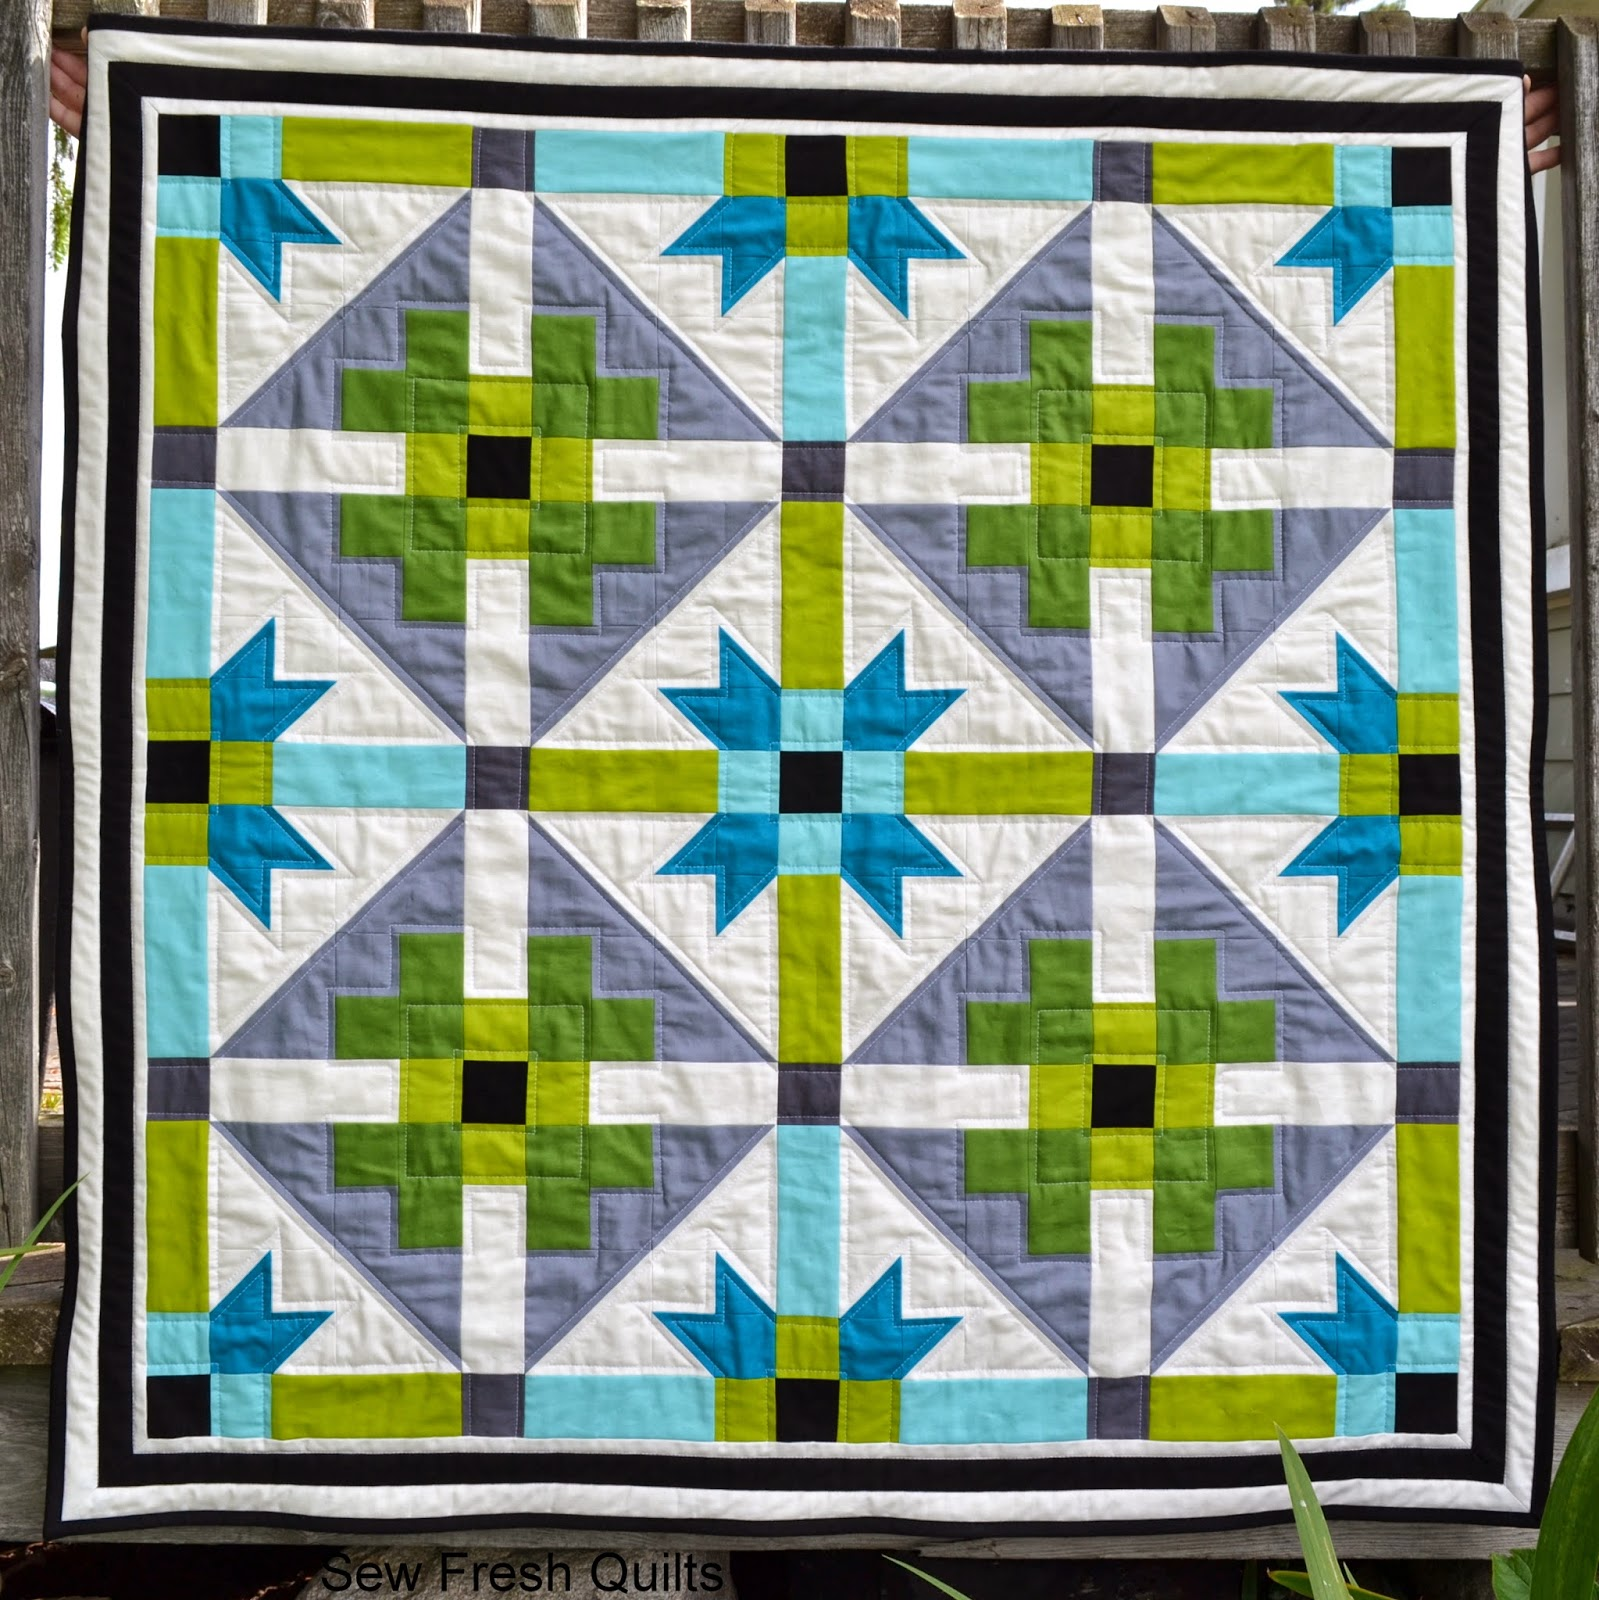 http://sewfreshquilts.blogspot.ca/2014/07/genx-aztec-baby-quilt-with-tutorial.html